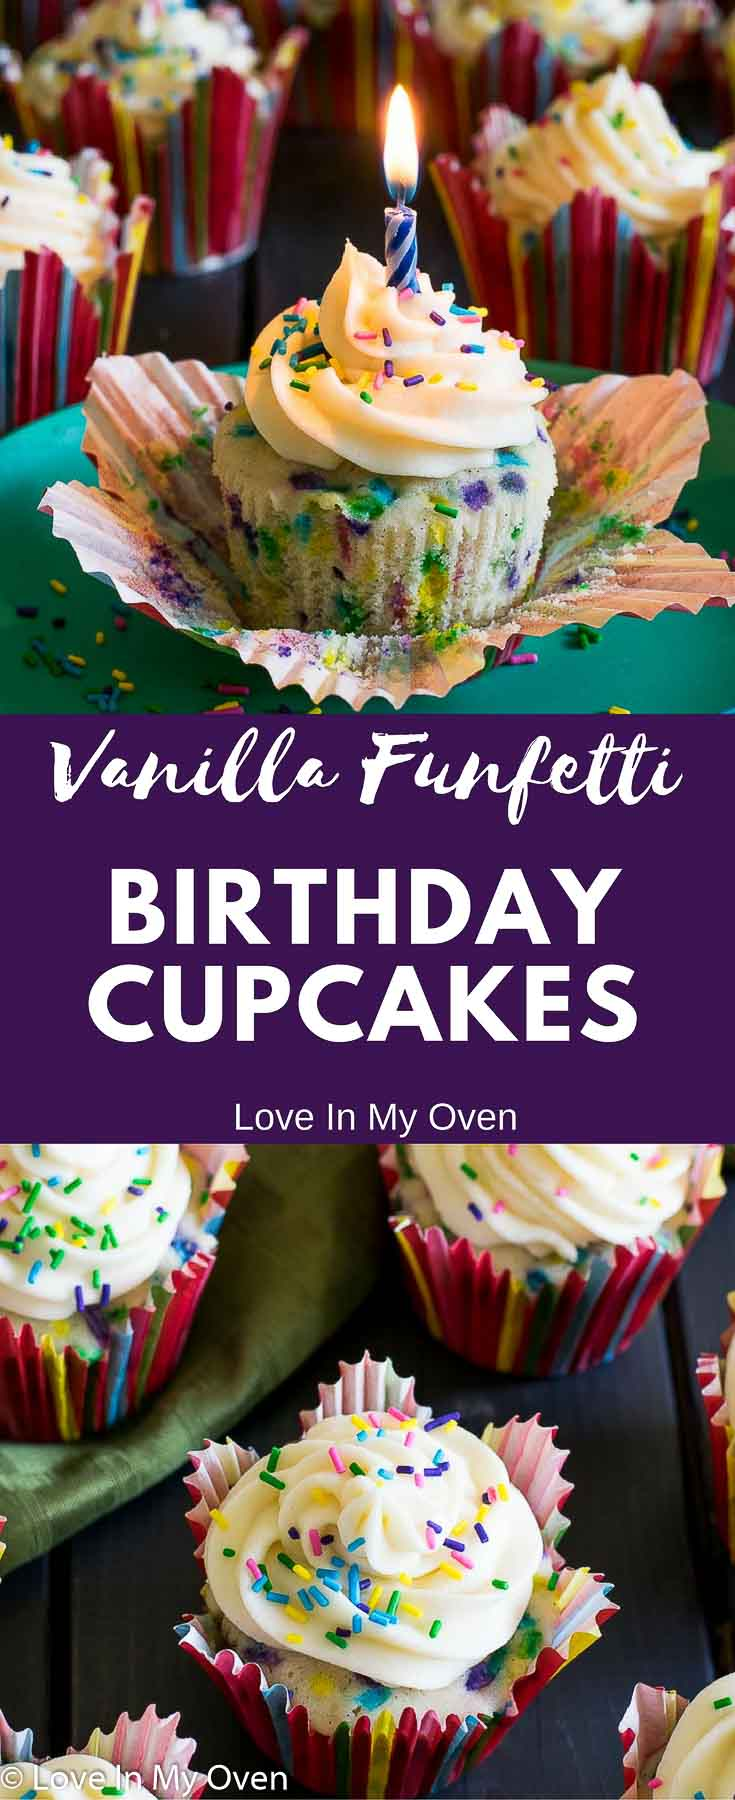 Soft, fluffy, funfetti cupcakes with a sweet vanilla flavour and thick, creamy vanilla frosting. The perfect birthday cupcake!!